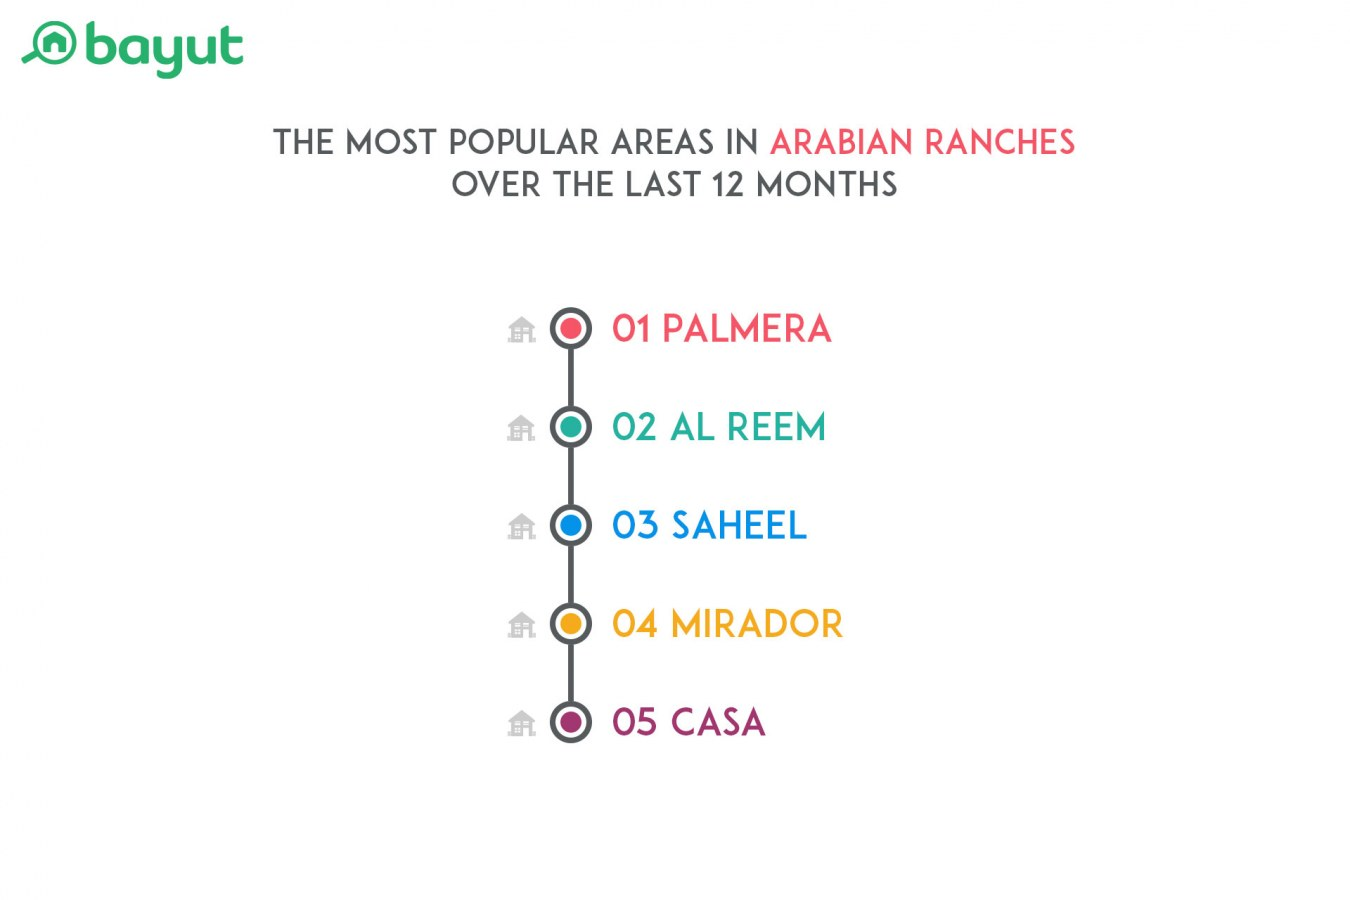 Areas in the Arabian Ranches